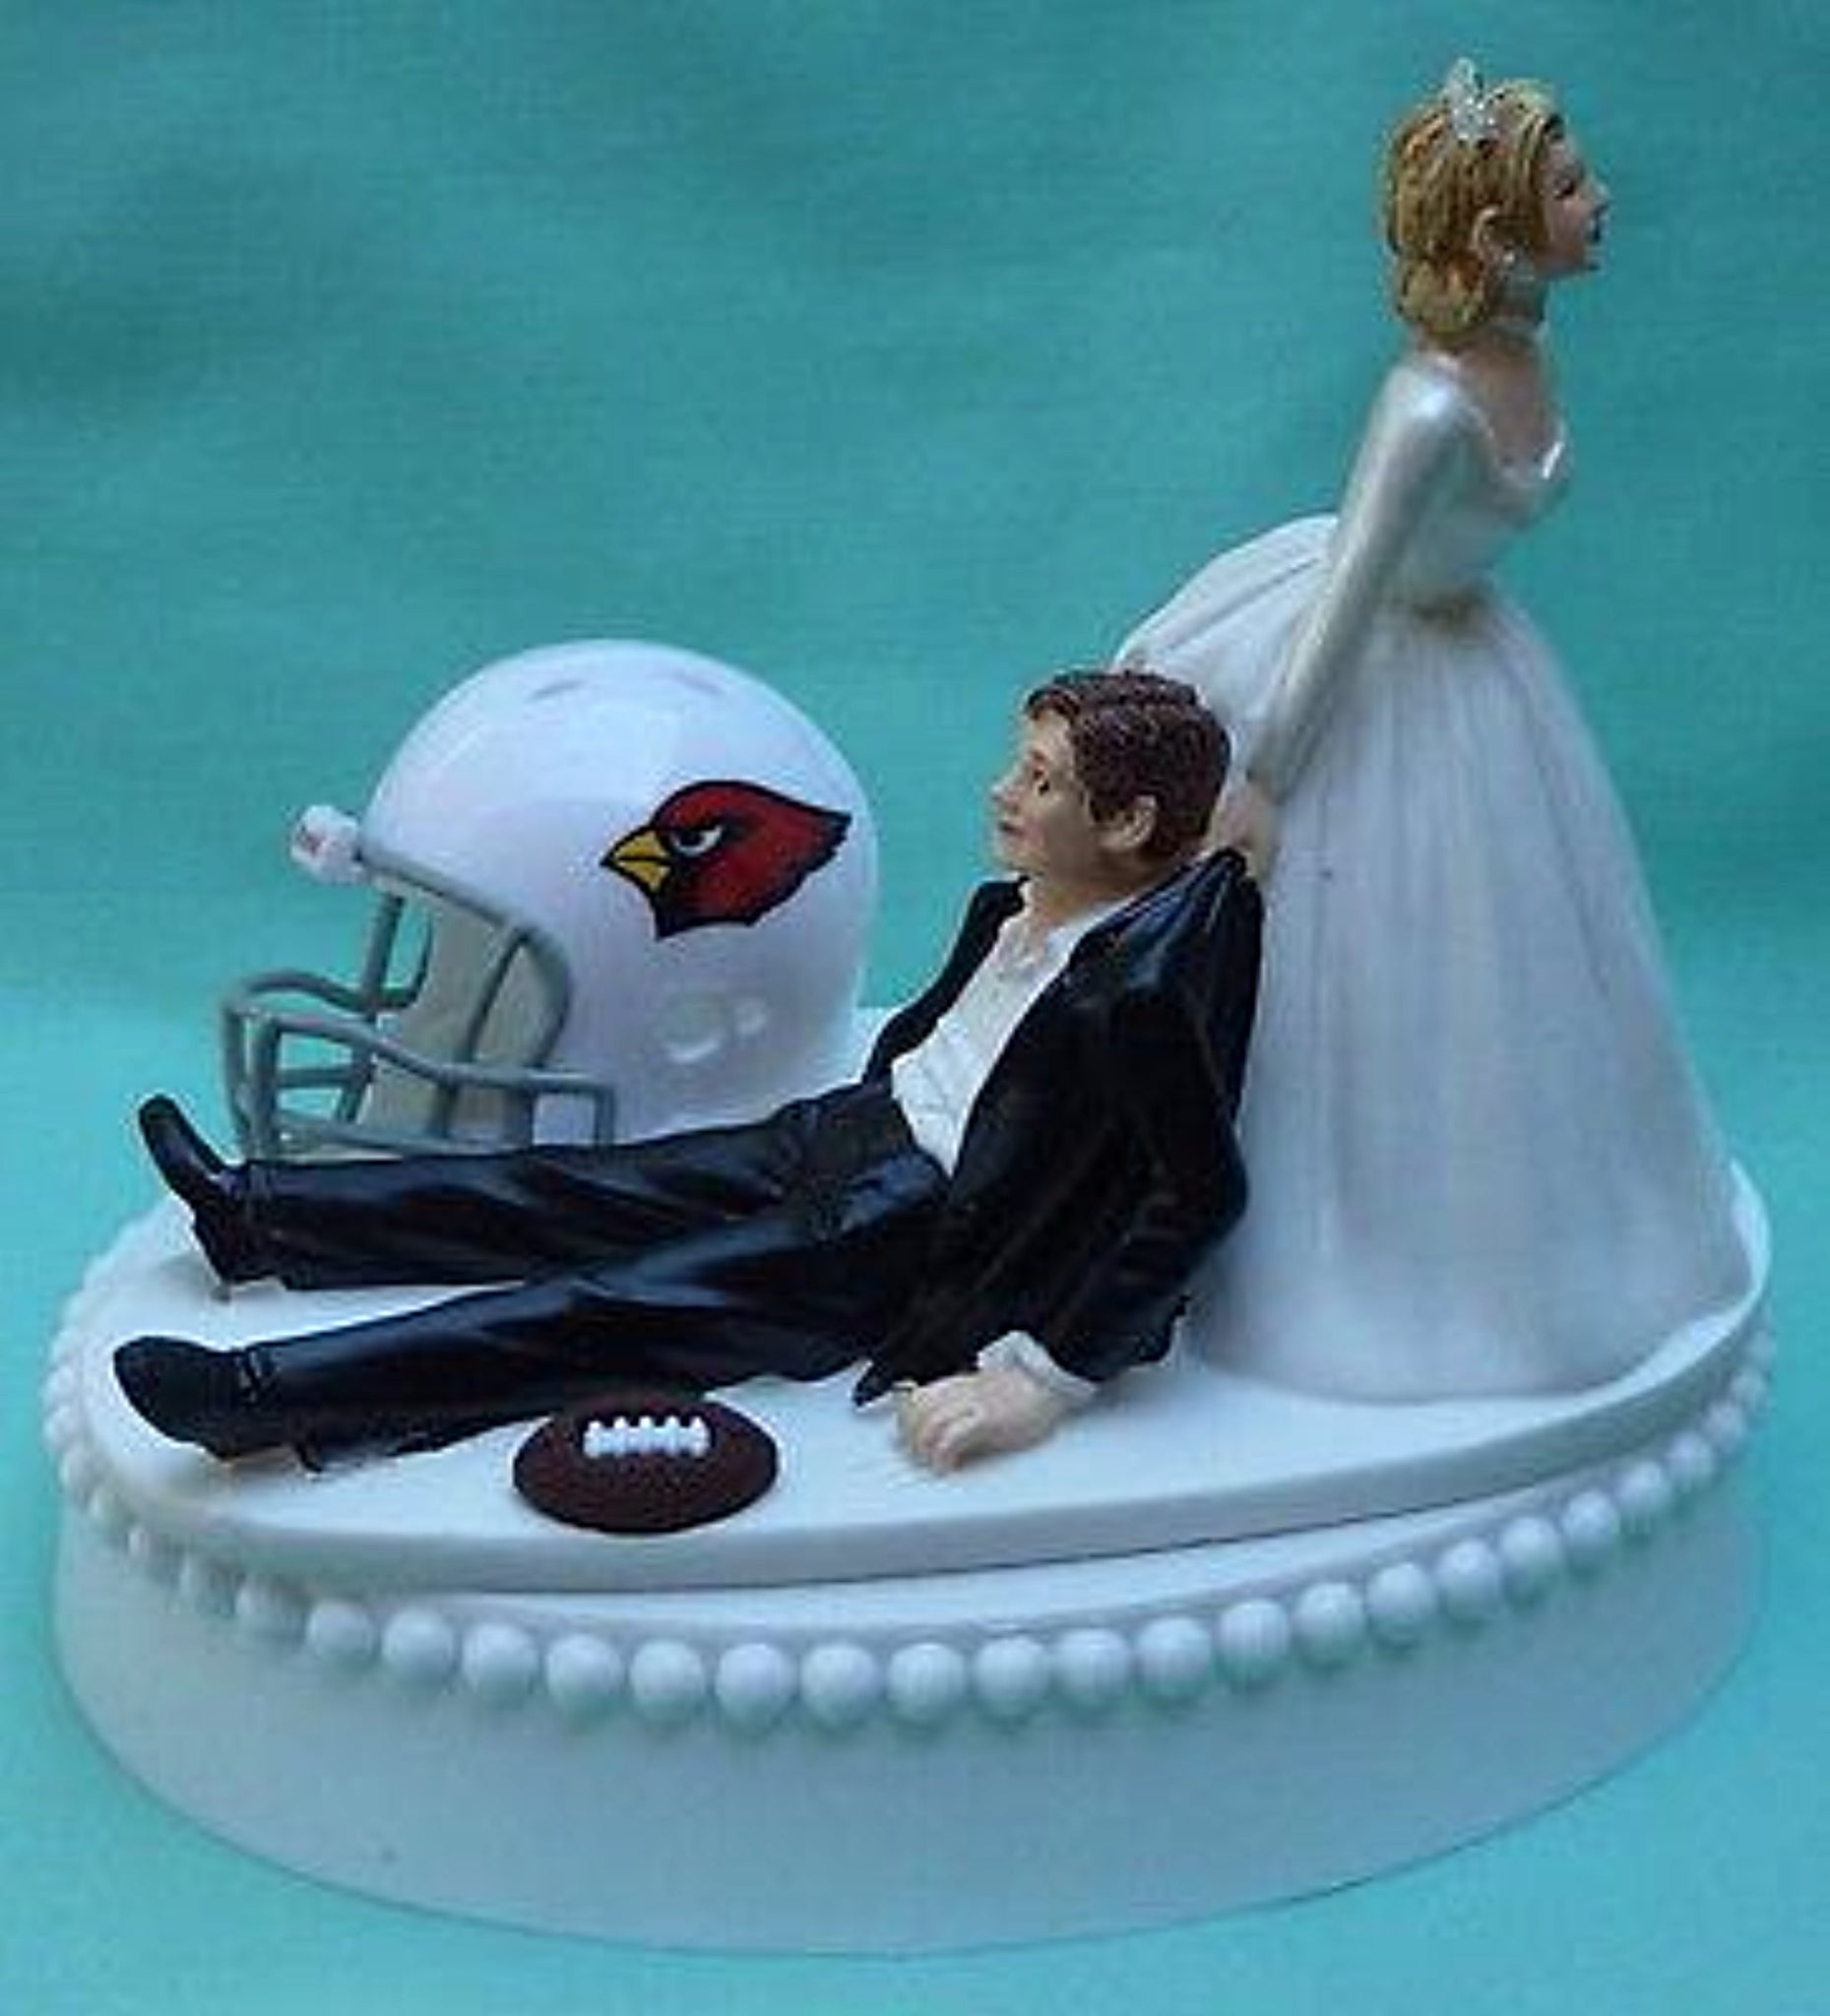 Arizona Cardinals Wedding Cake Topper FunWeddingThings.com Football Fans Fun Sporty